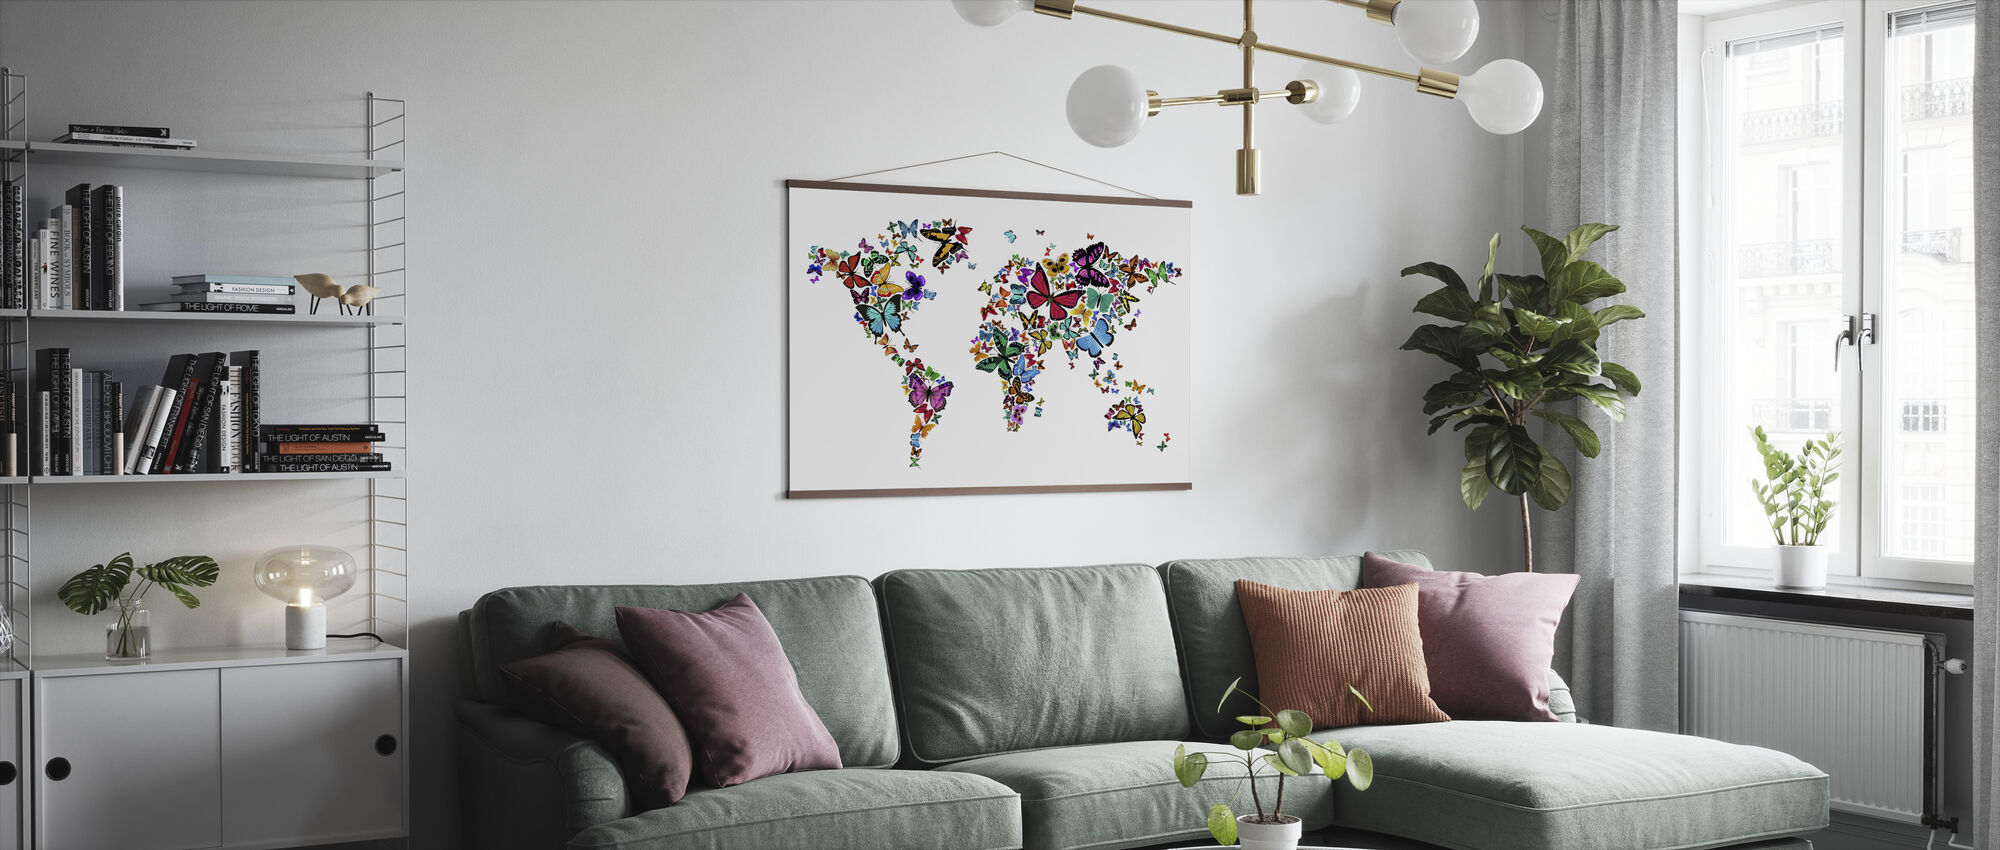 Large Butterflies World Map - Poster - Living Room